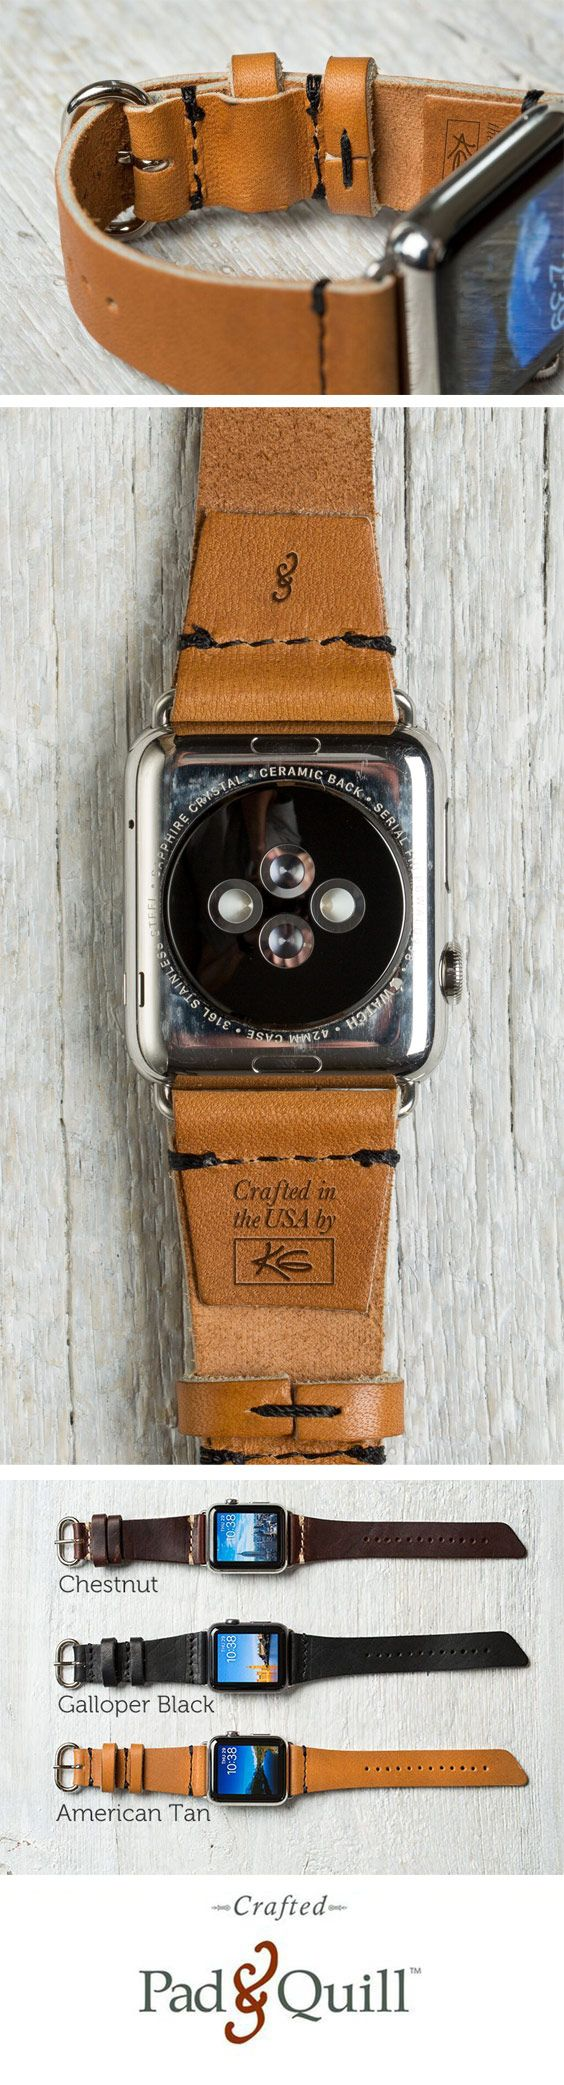 http://www.PadandQuill.com Urban chic, rugged, yet supple soft, meet the Lowry Leather Apple Watch Band by Pad & Quill. Handmade in the USA from Horween tanneries legendary full-grain leather, each band is signed by the artisan who crafted it. Make a statement with this leather Apple Watch band from Pad & Quill. #applewatch